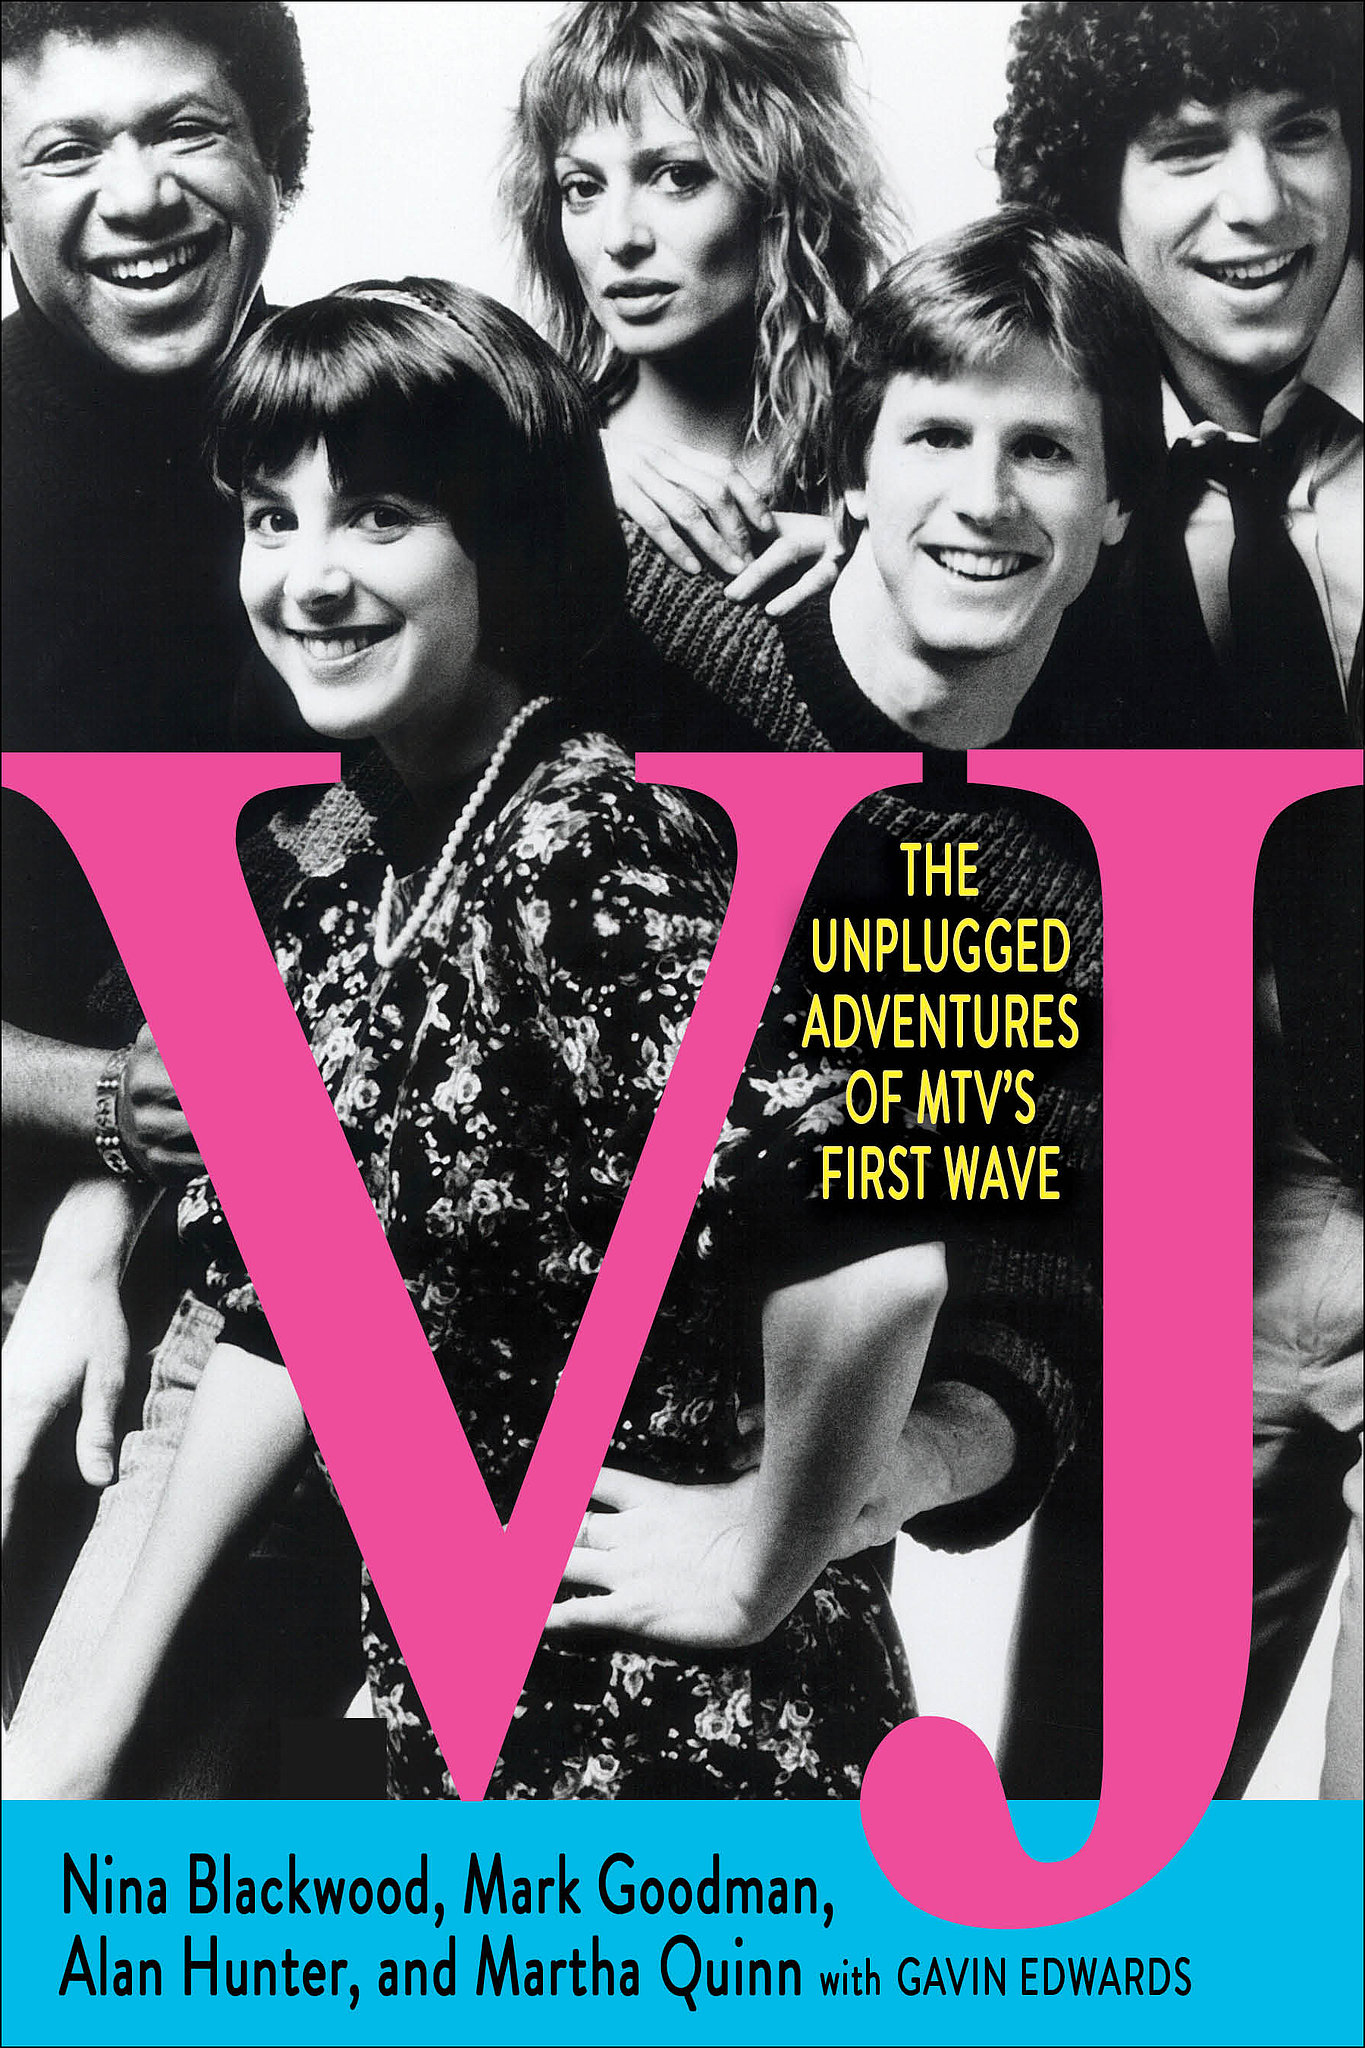 VJ: The Unplugged Adventures of MTV's First Wave